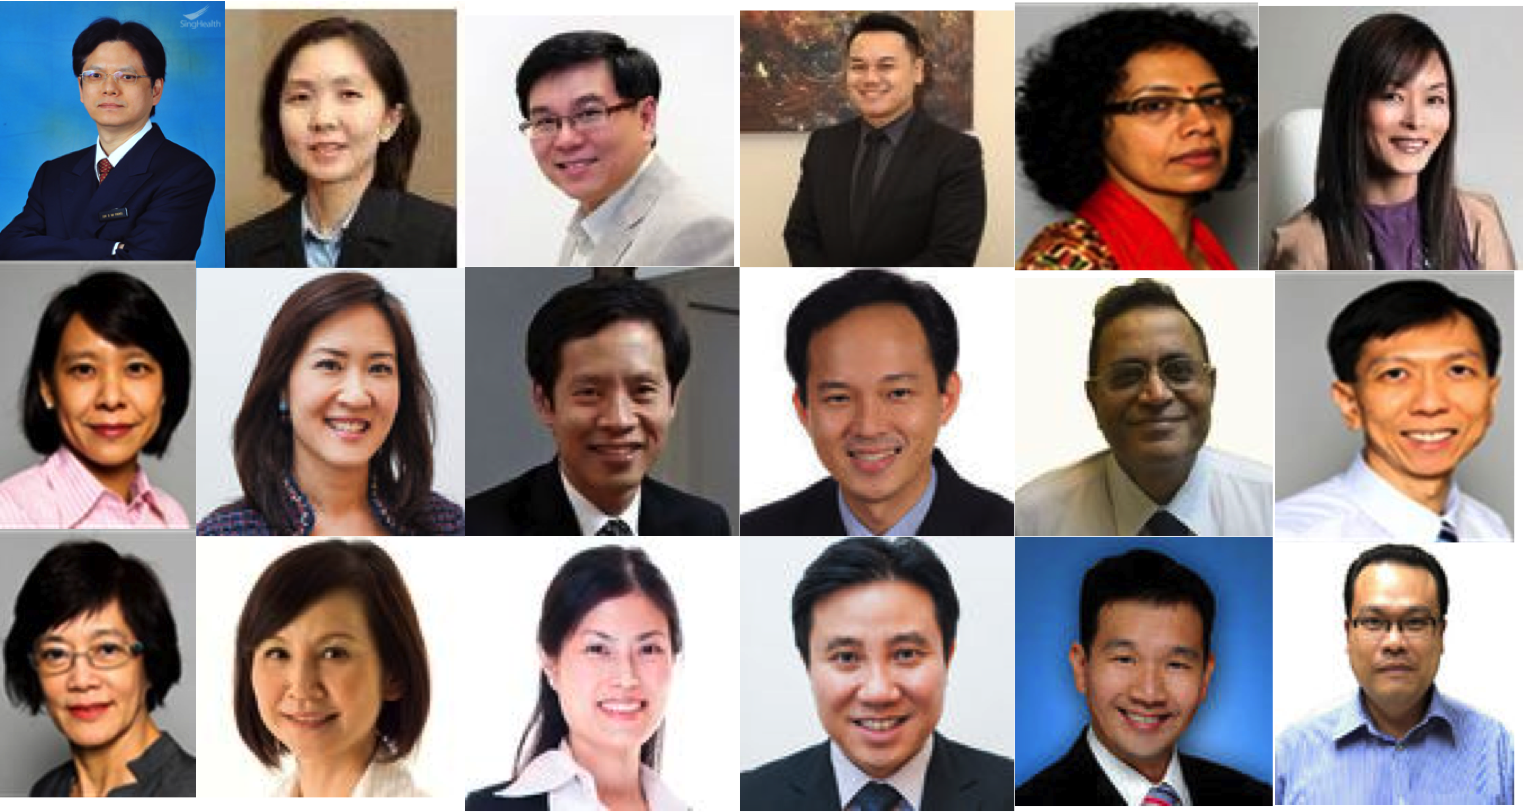 Dermatologists in Singapore